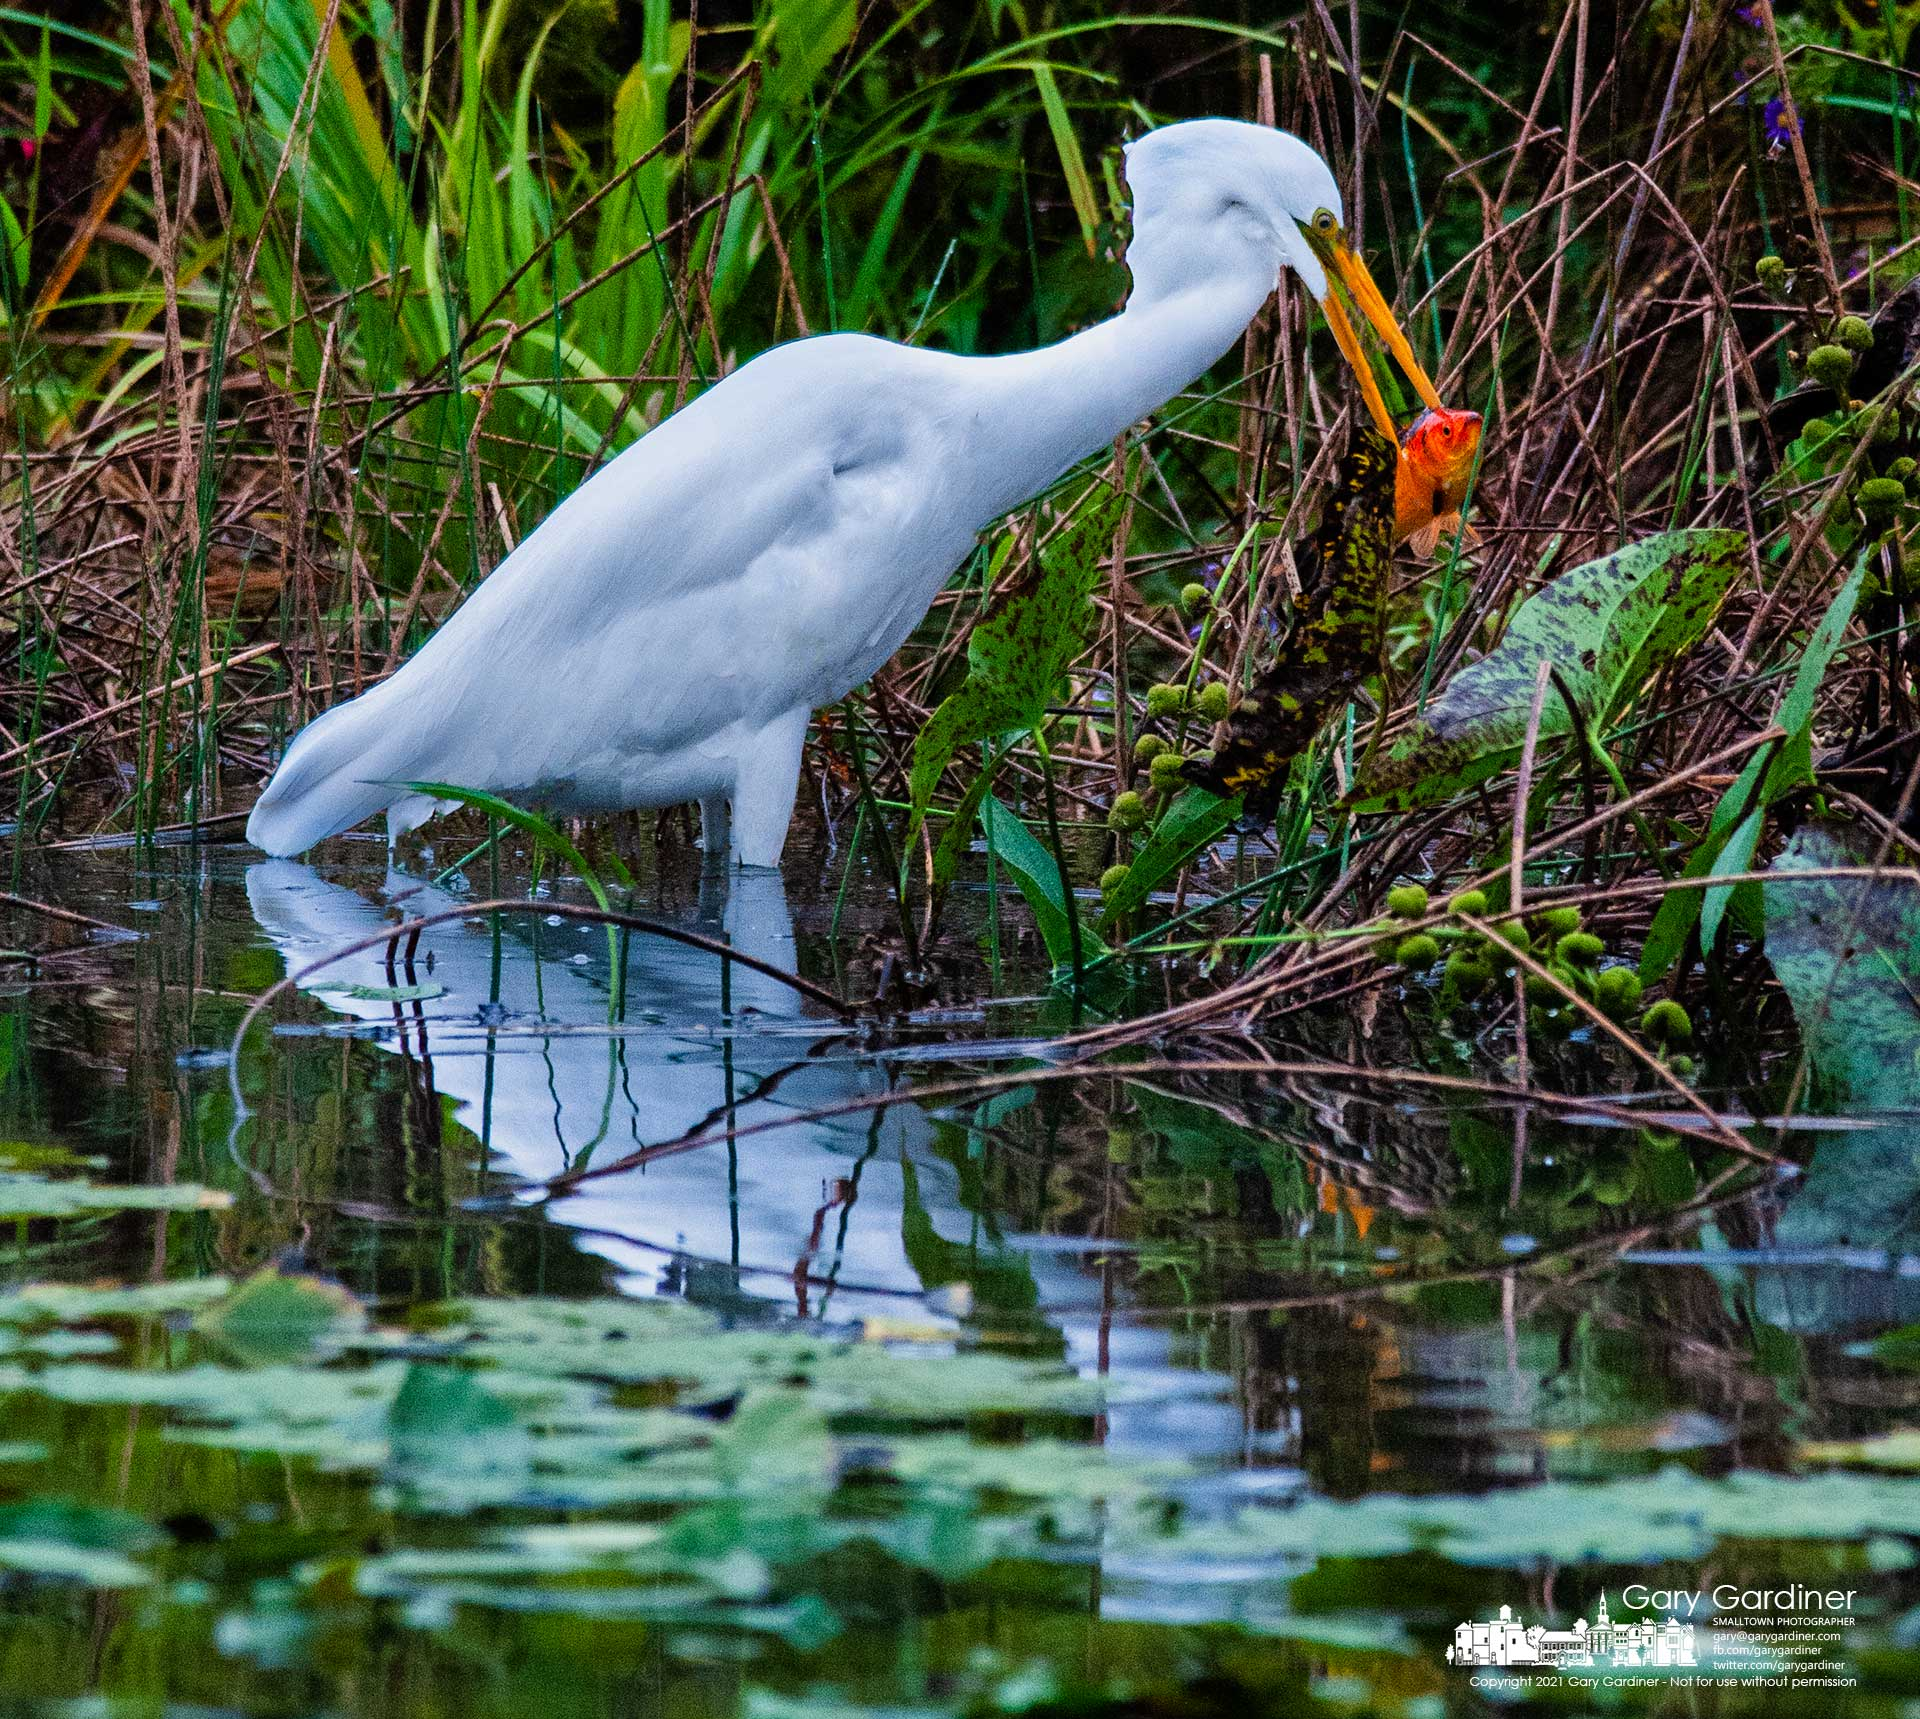 A great egret feasts on an abandoned goldfish pulled from the waters of the wetlands at Highlands during a break in Tuesday's rain. My Final Photo for Sept. 22, 2021.